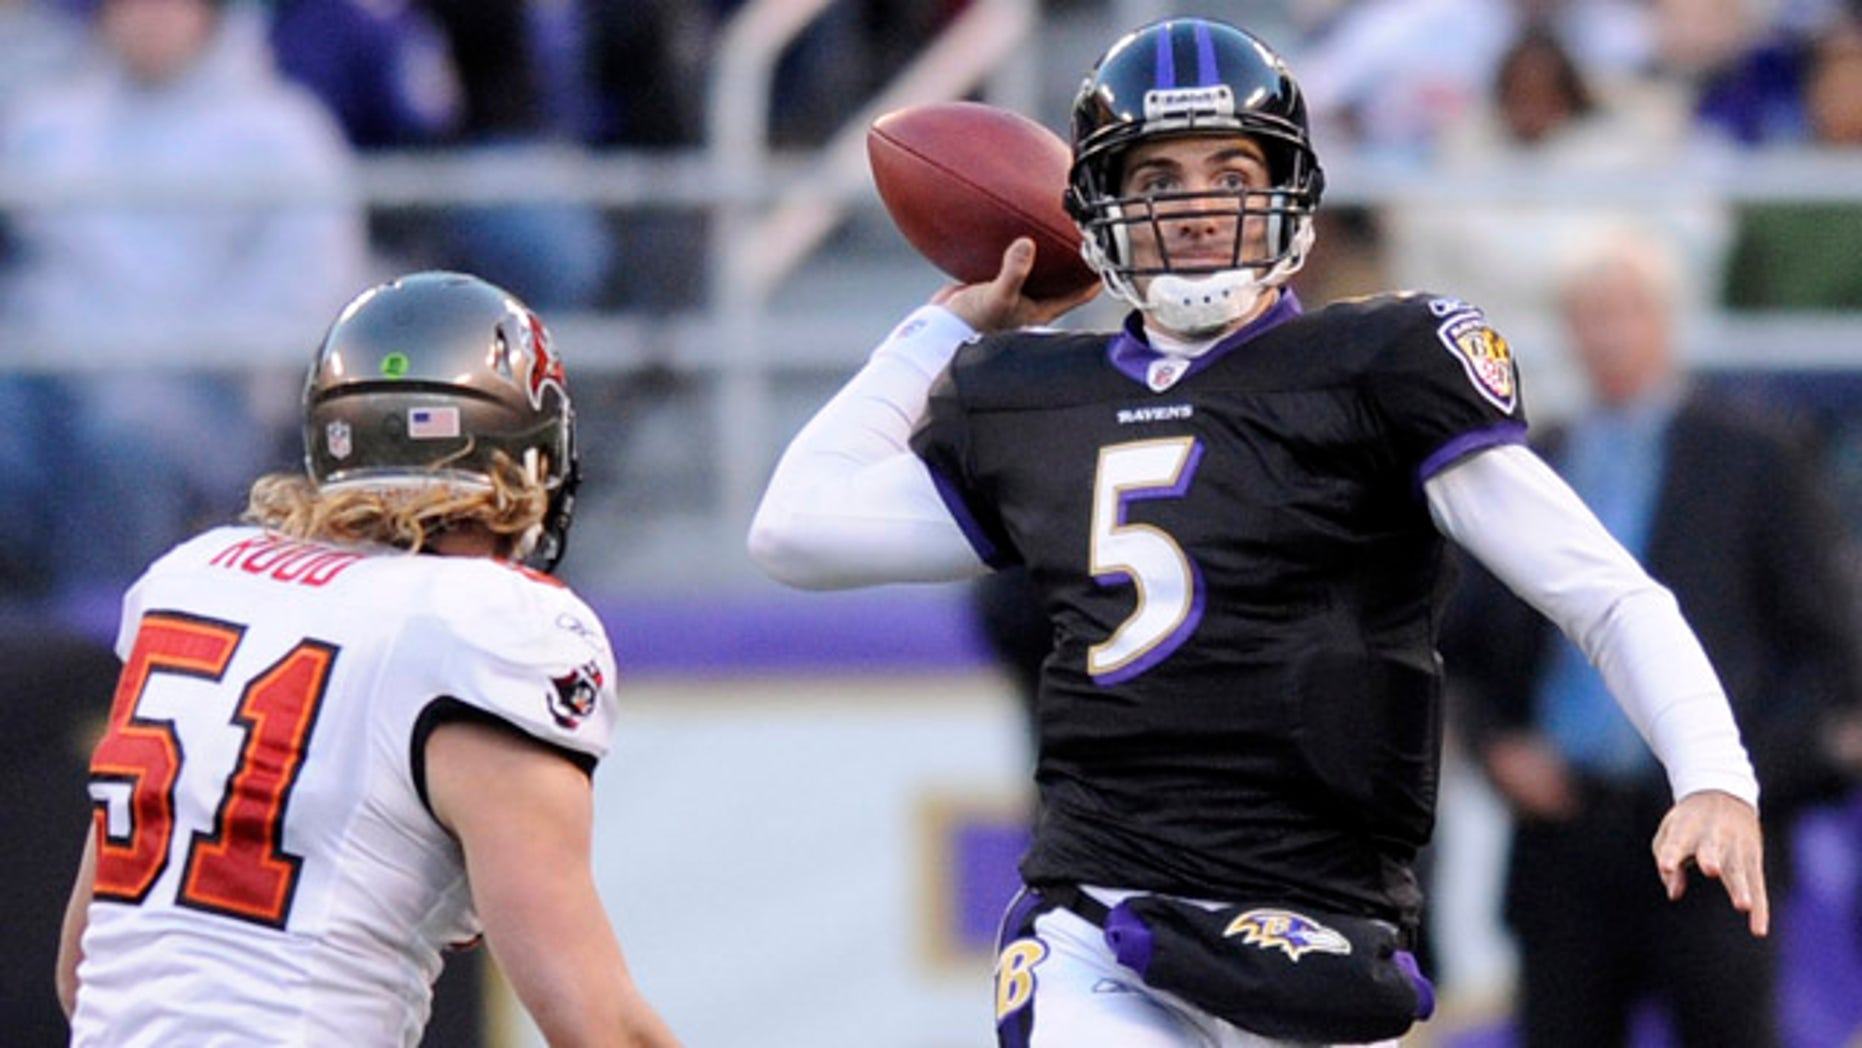 Nov. 28: Baltimore Ravens quarterback Joe Flacco (5) throws a pass while being pressured byTampa Bay Buccaneers linebacker Barrett Ruud (51) during the first half of an NFL football game in Baltimore.